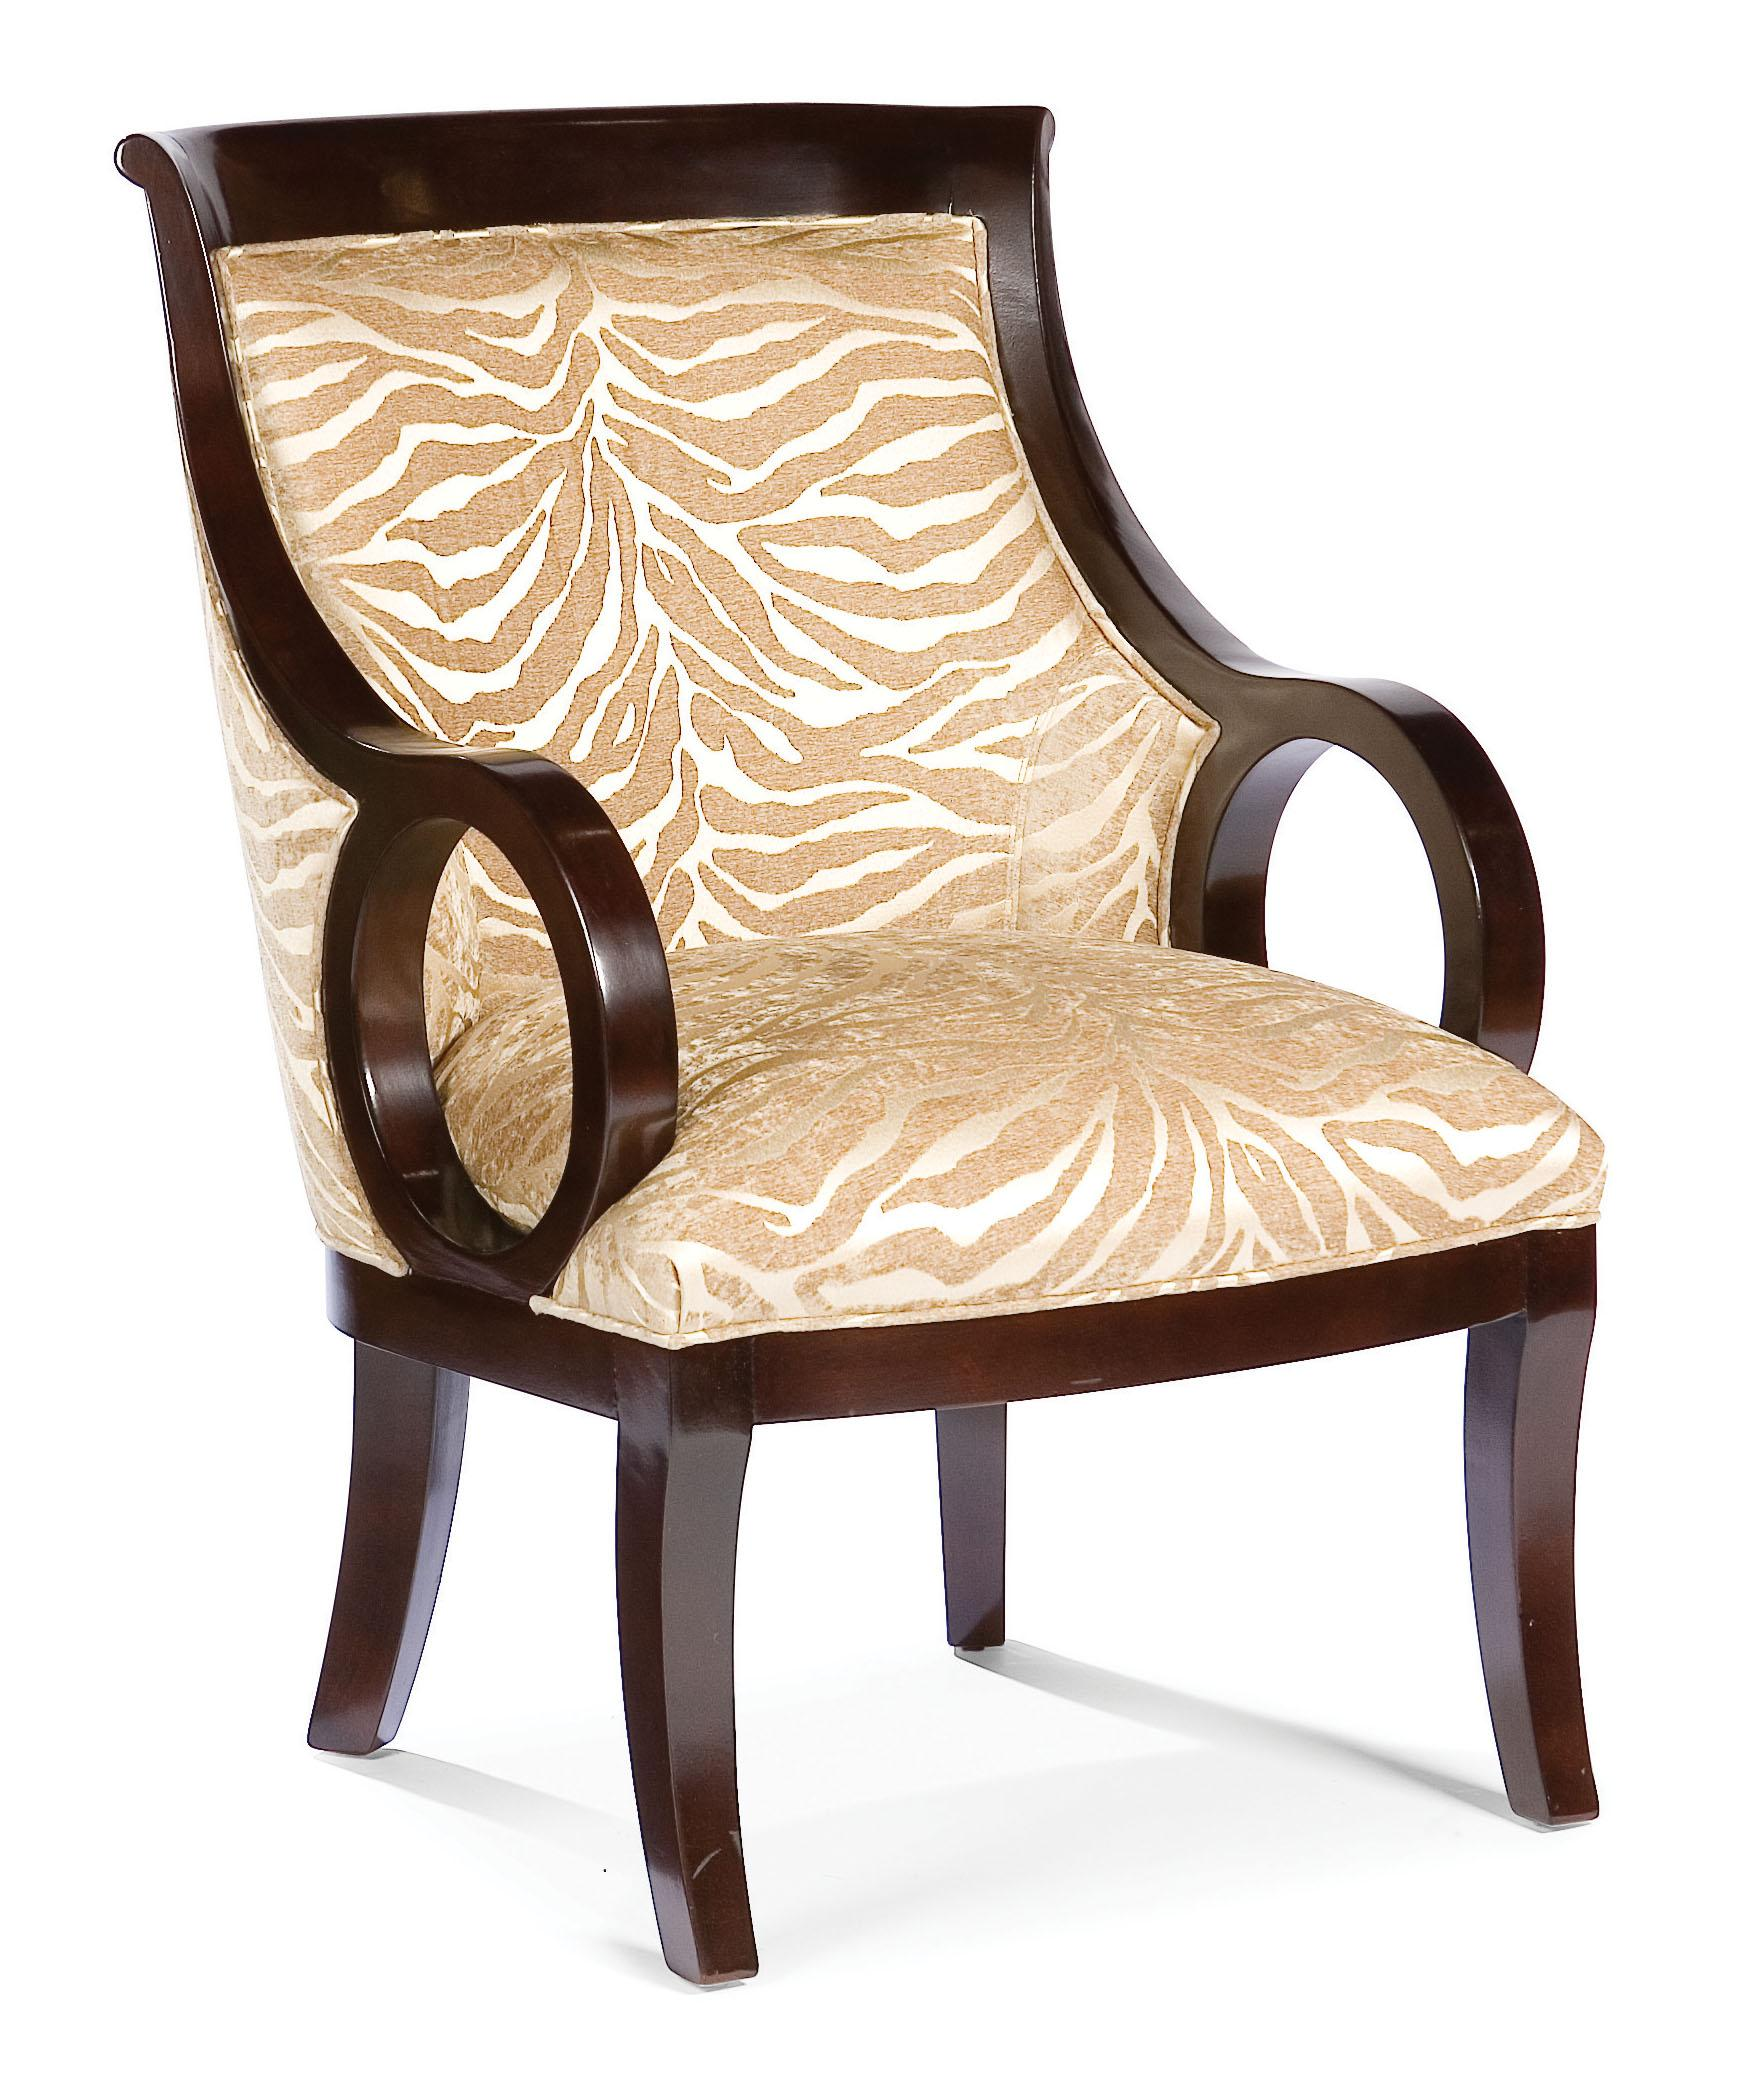 Fairfield Chairs Exposed Wood Occasional Chair - Item Number: 5459-01